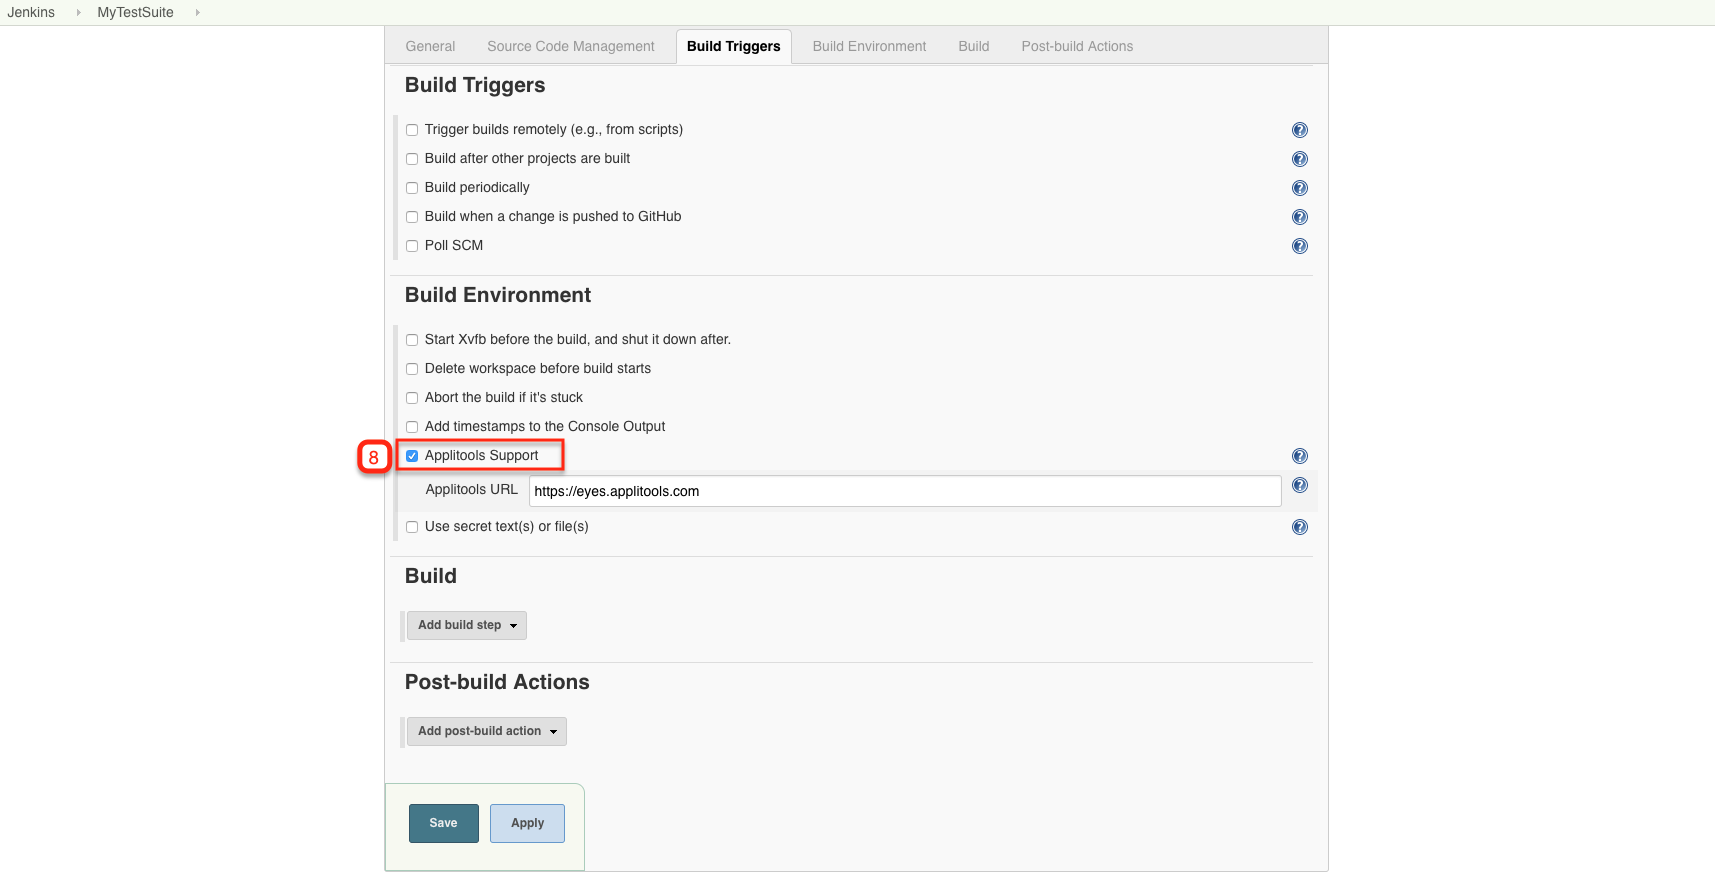 Integration with the Jenkins plugin – Applitools